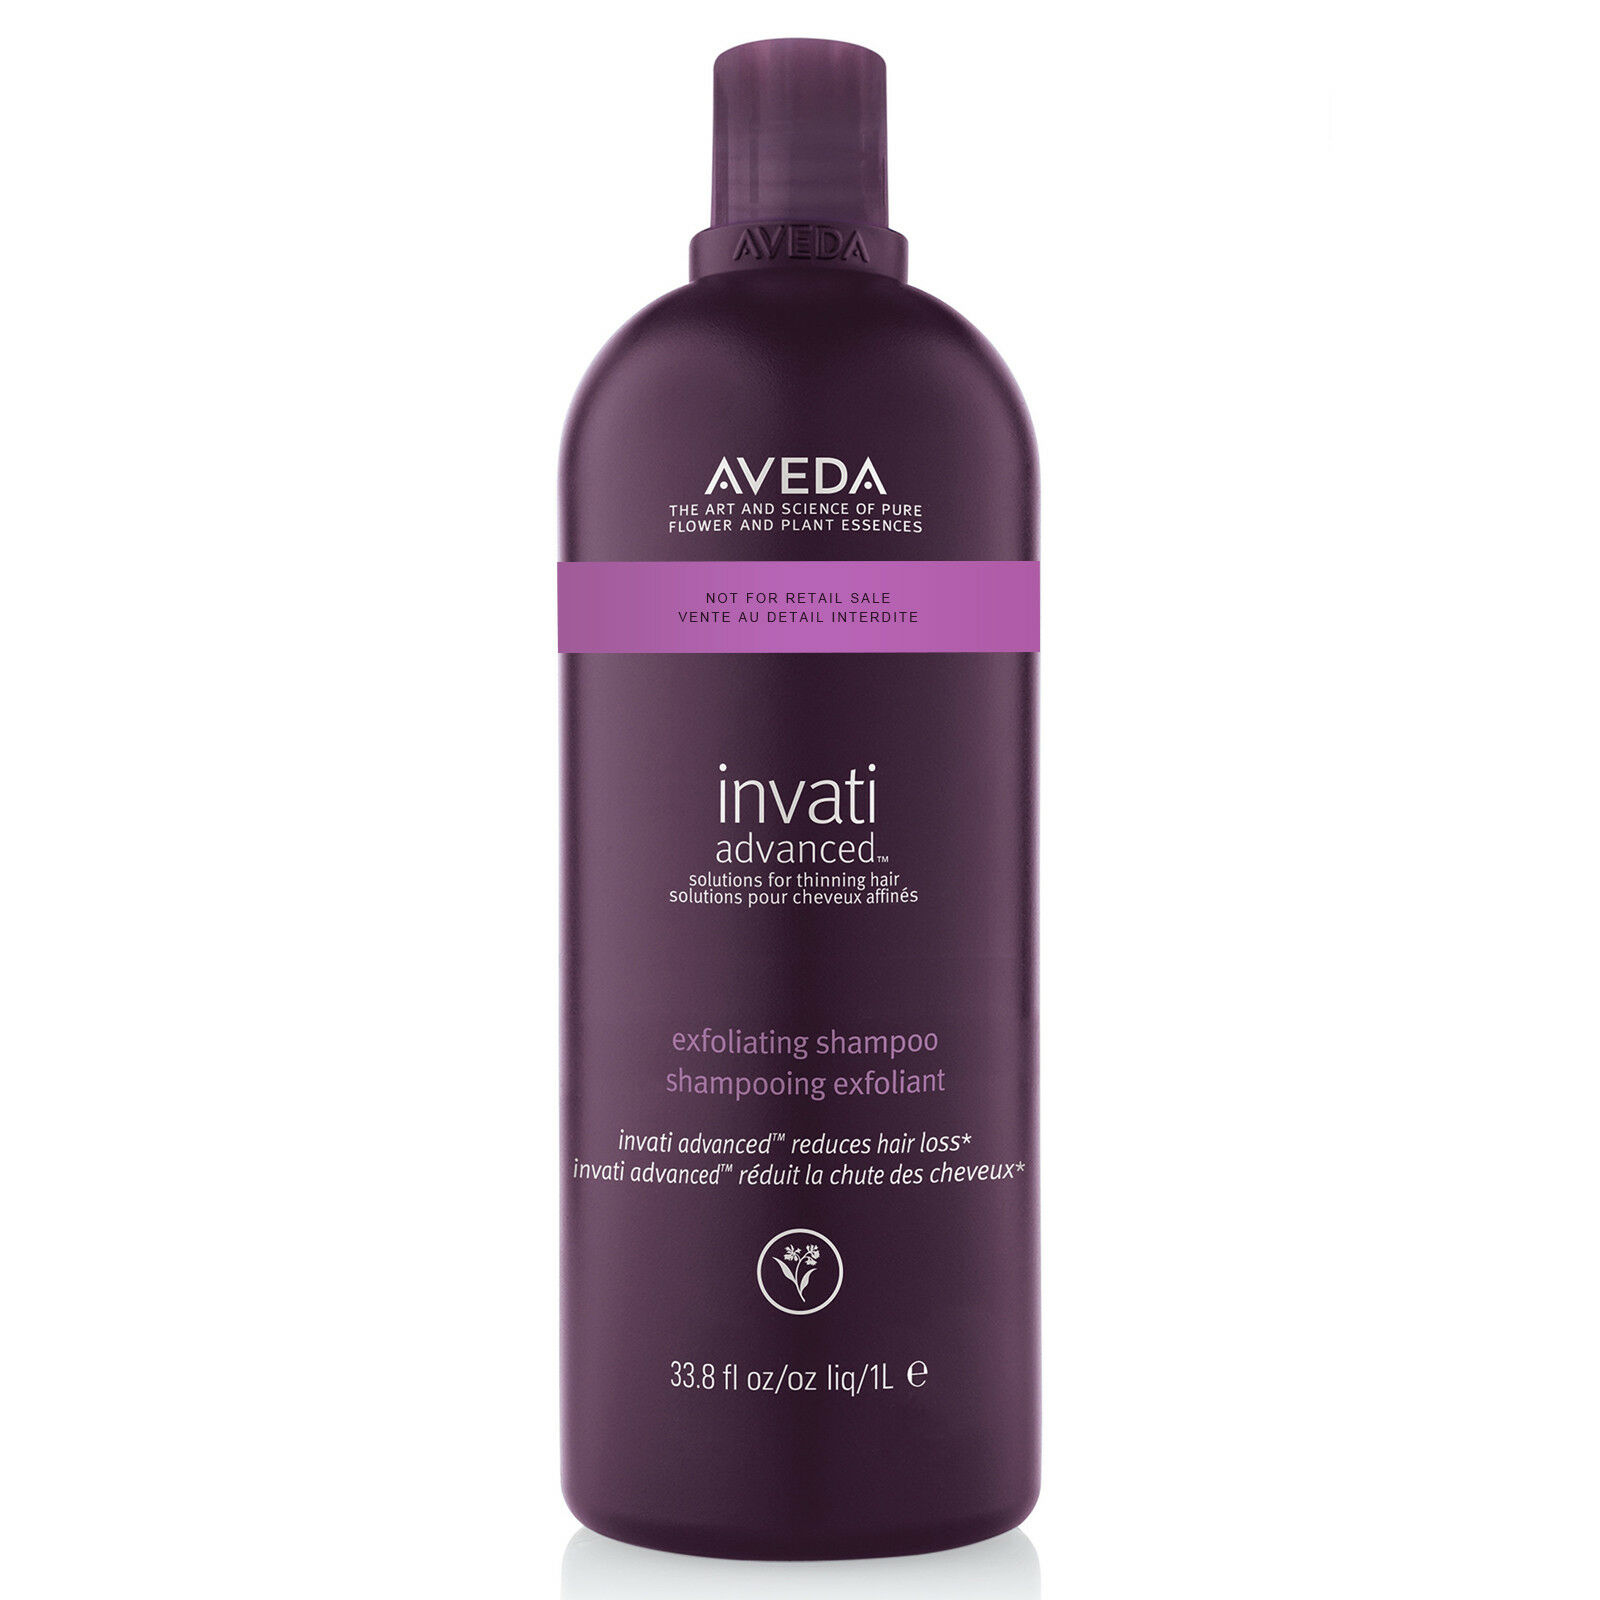 Aveda Invati Advanced Exfoliating Shampoo 33.8 fl oz. 1 Lite